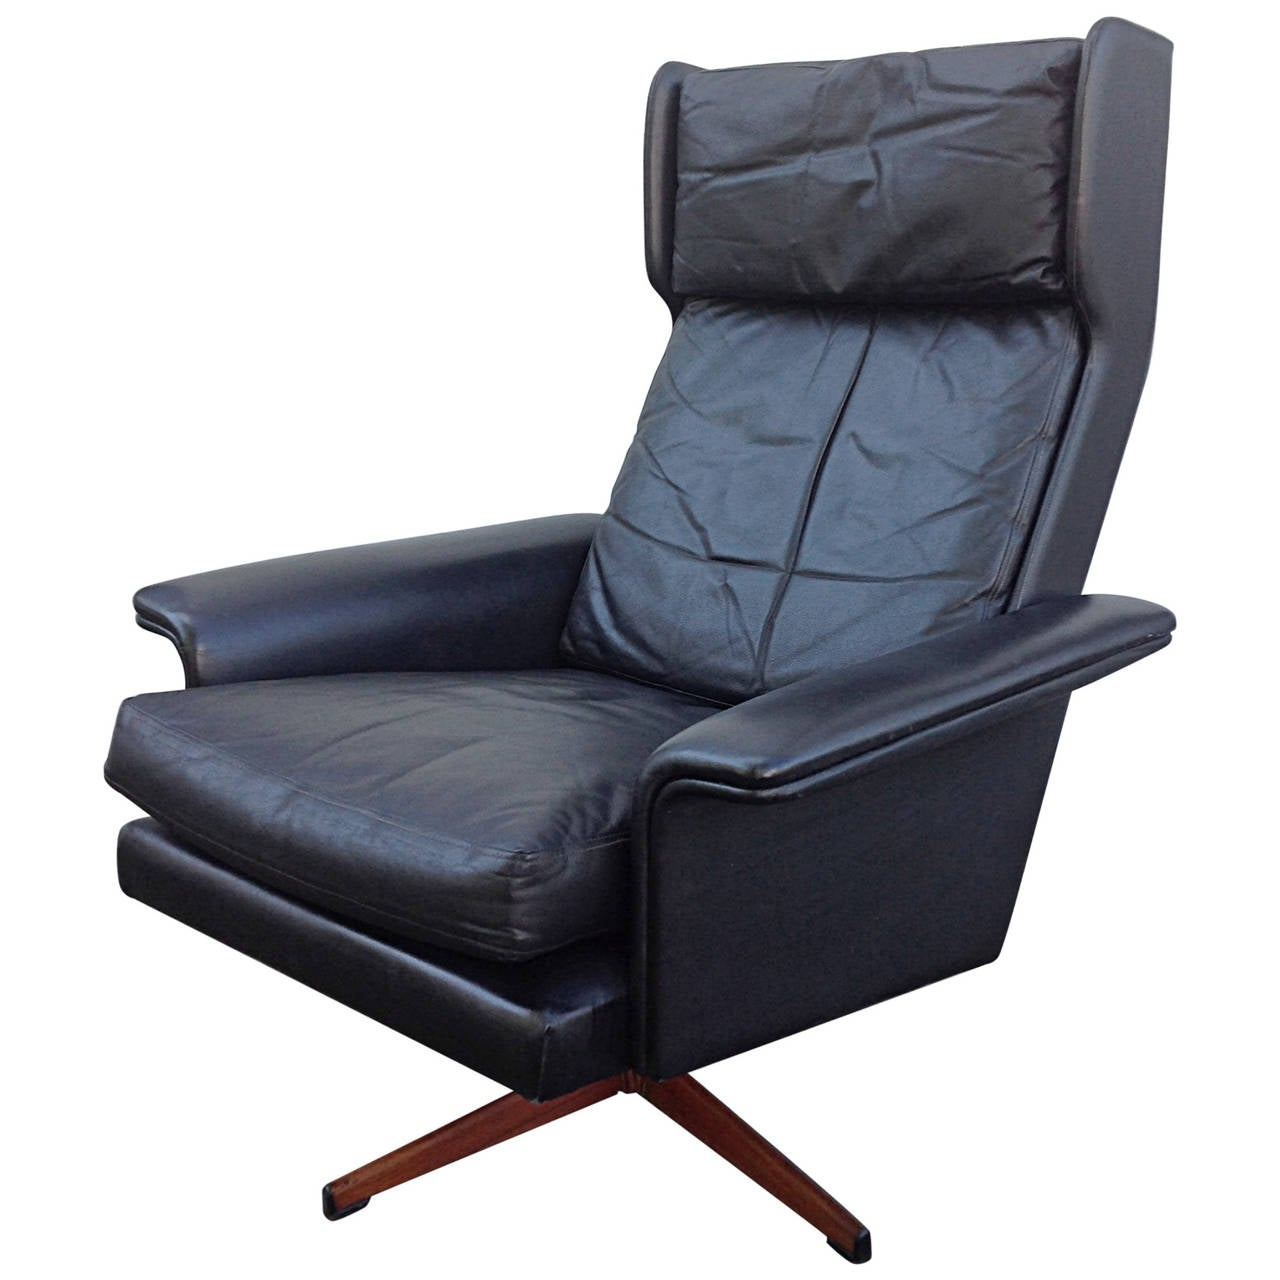 leather swivel chair reclining outdoor black wingback by komfort at 1stdibs